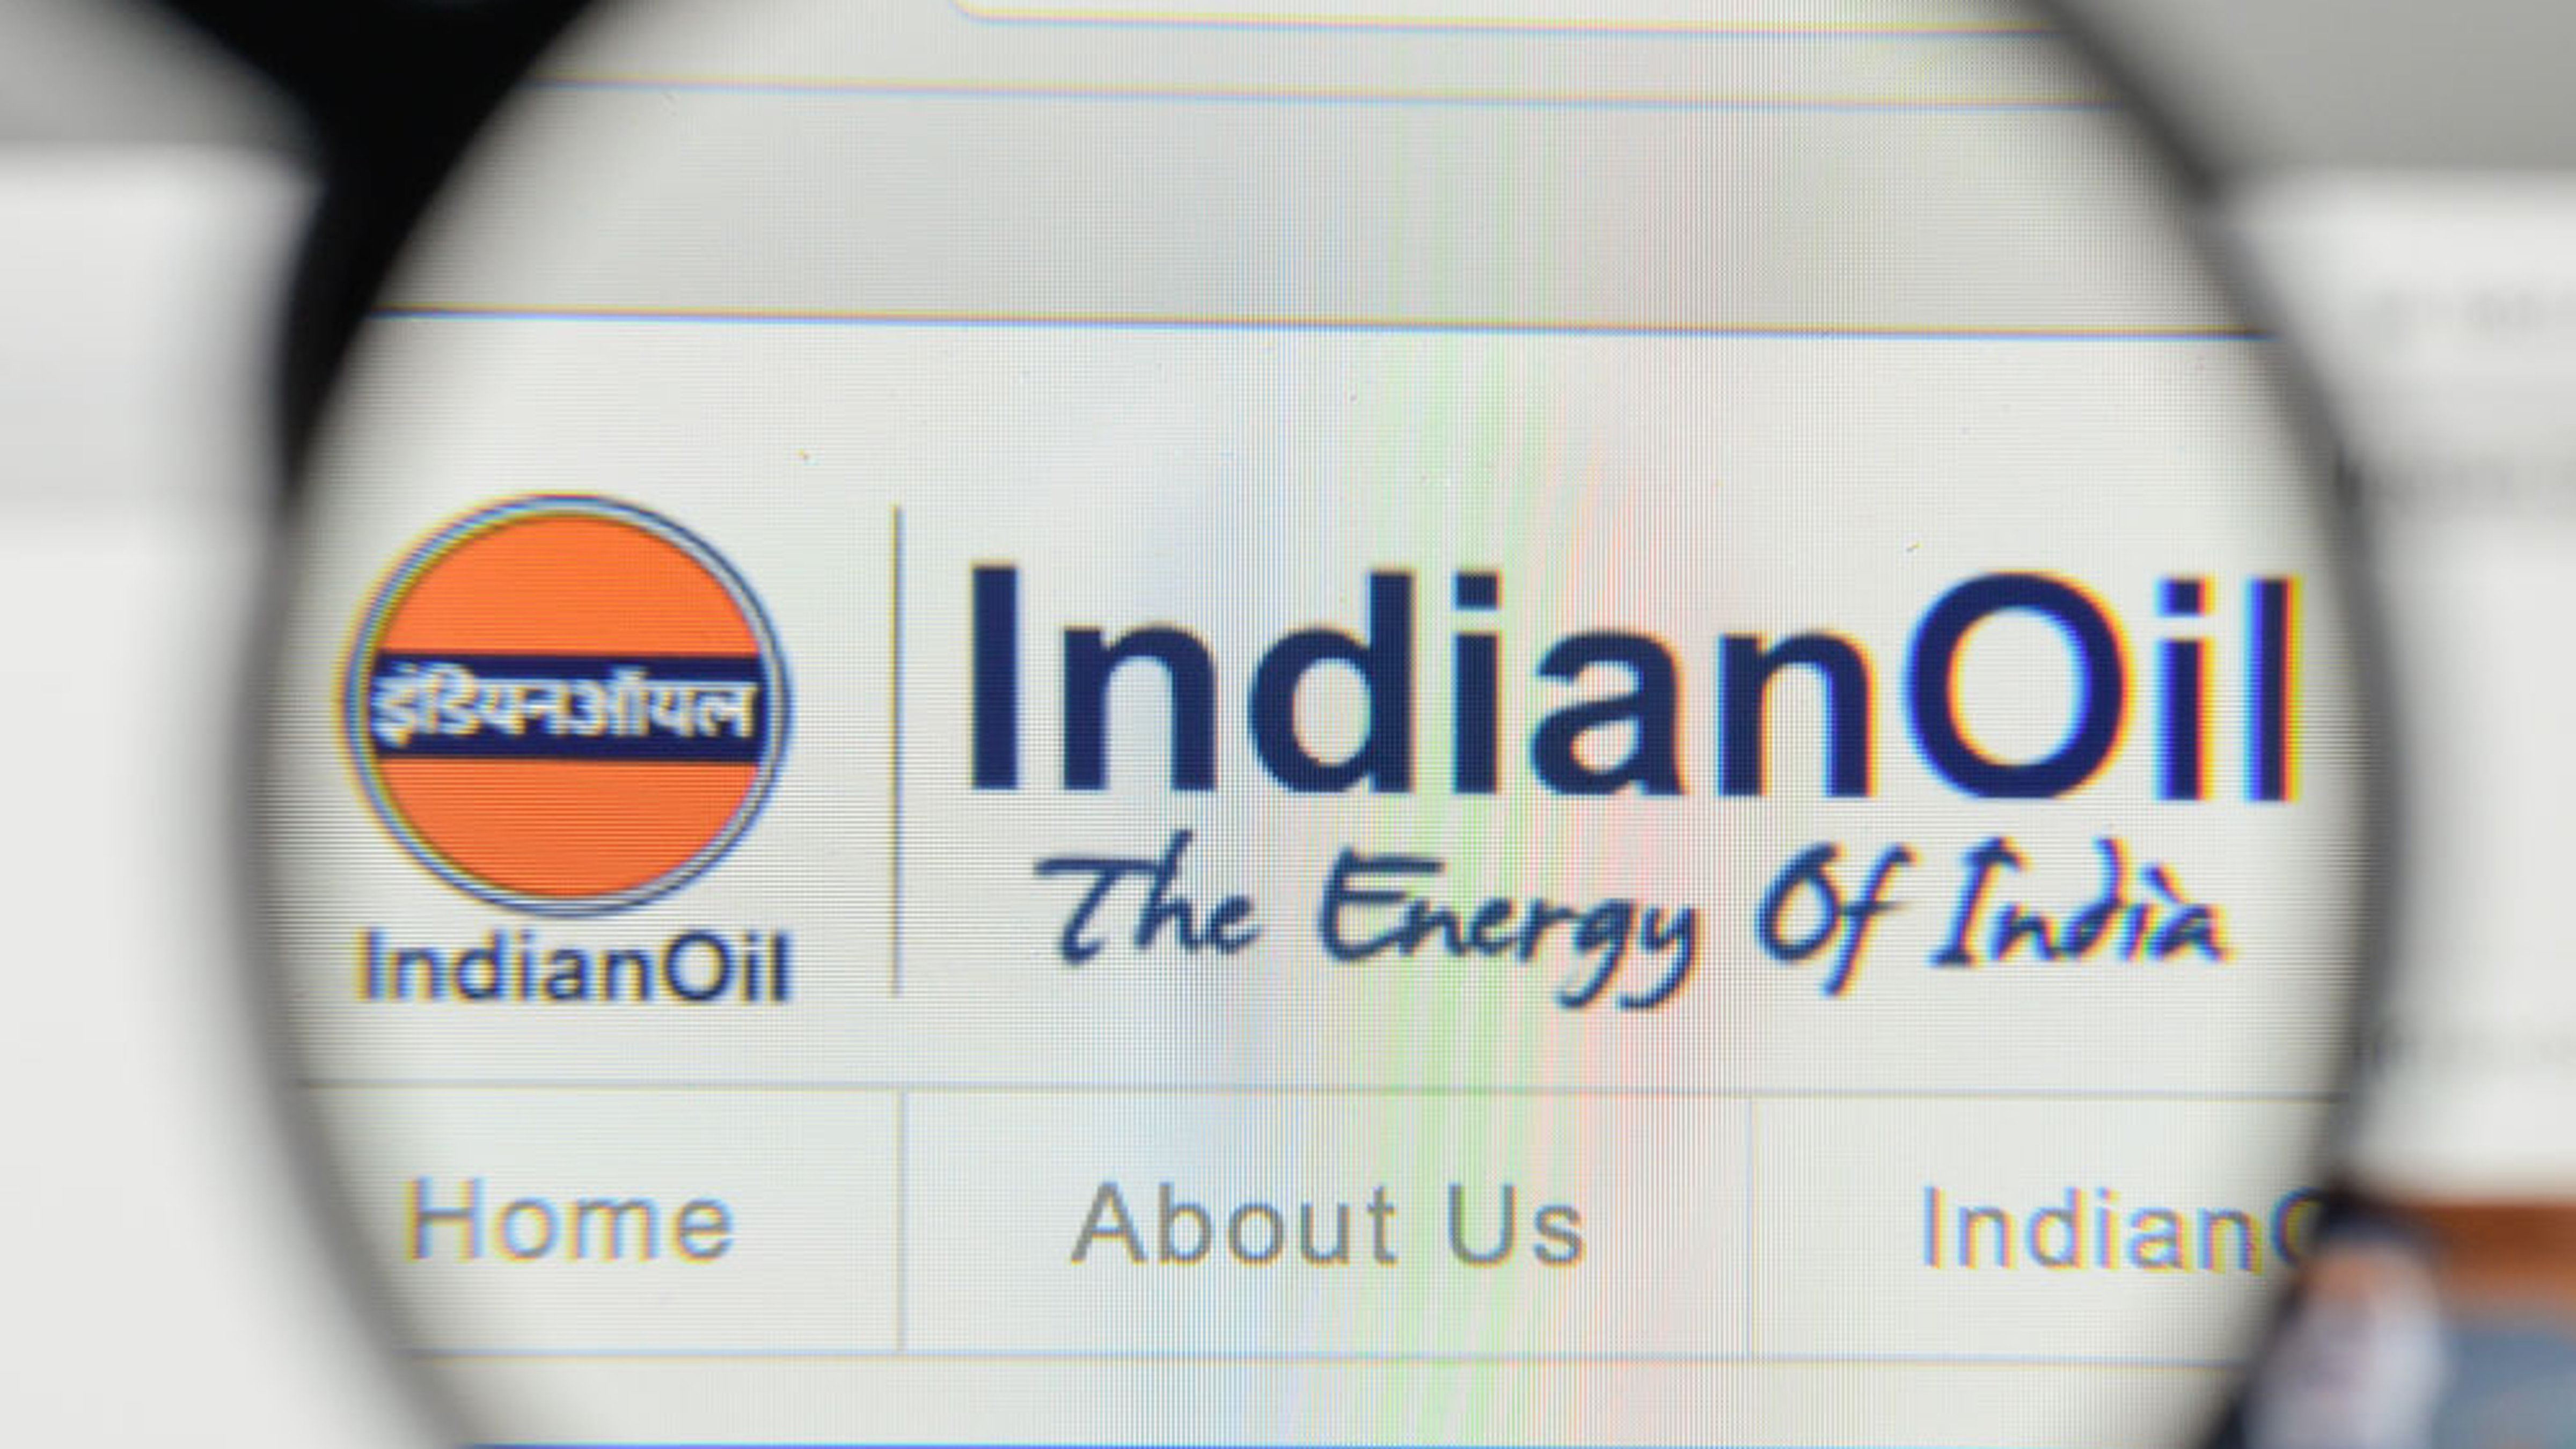 The ONGC was the top contributor with Rs 300 crore, followed by IOC chipping in Rs 225 crore along with Bharat Petroleum Corporation Ltd Rs 175 crore and Hindustan Petroleum Corporation Ltd chipped in Rs 120 crore.